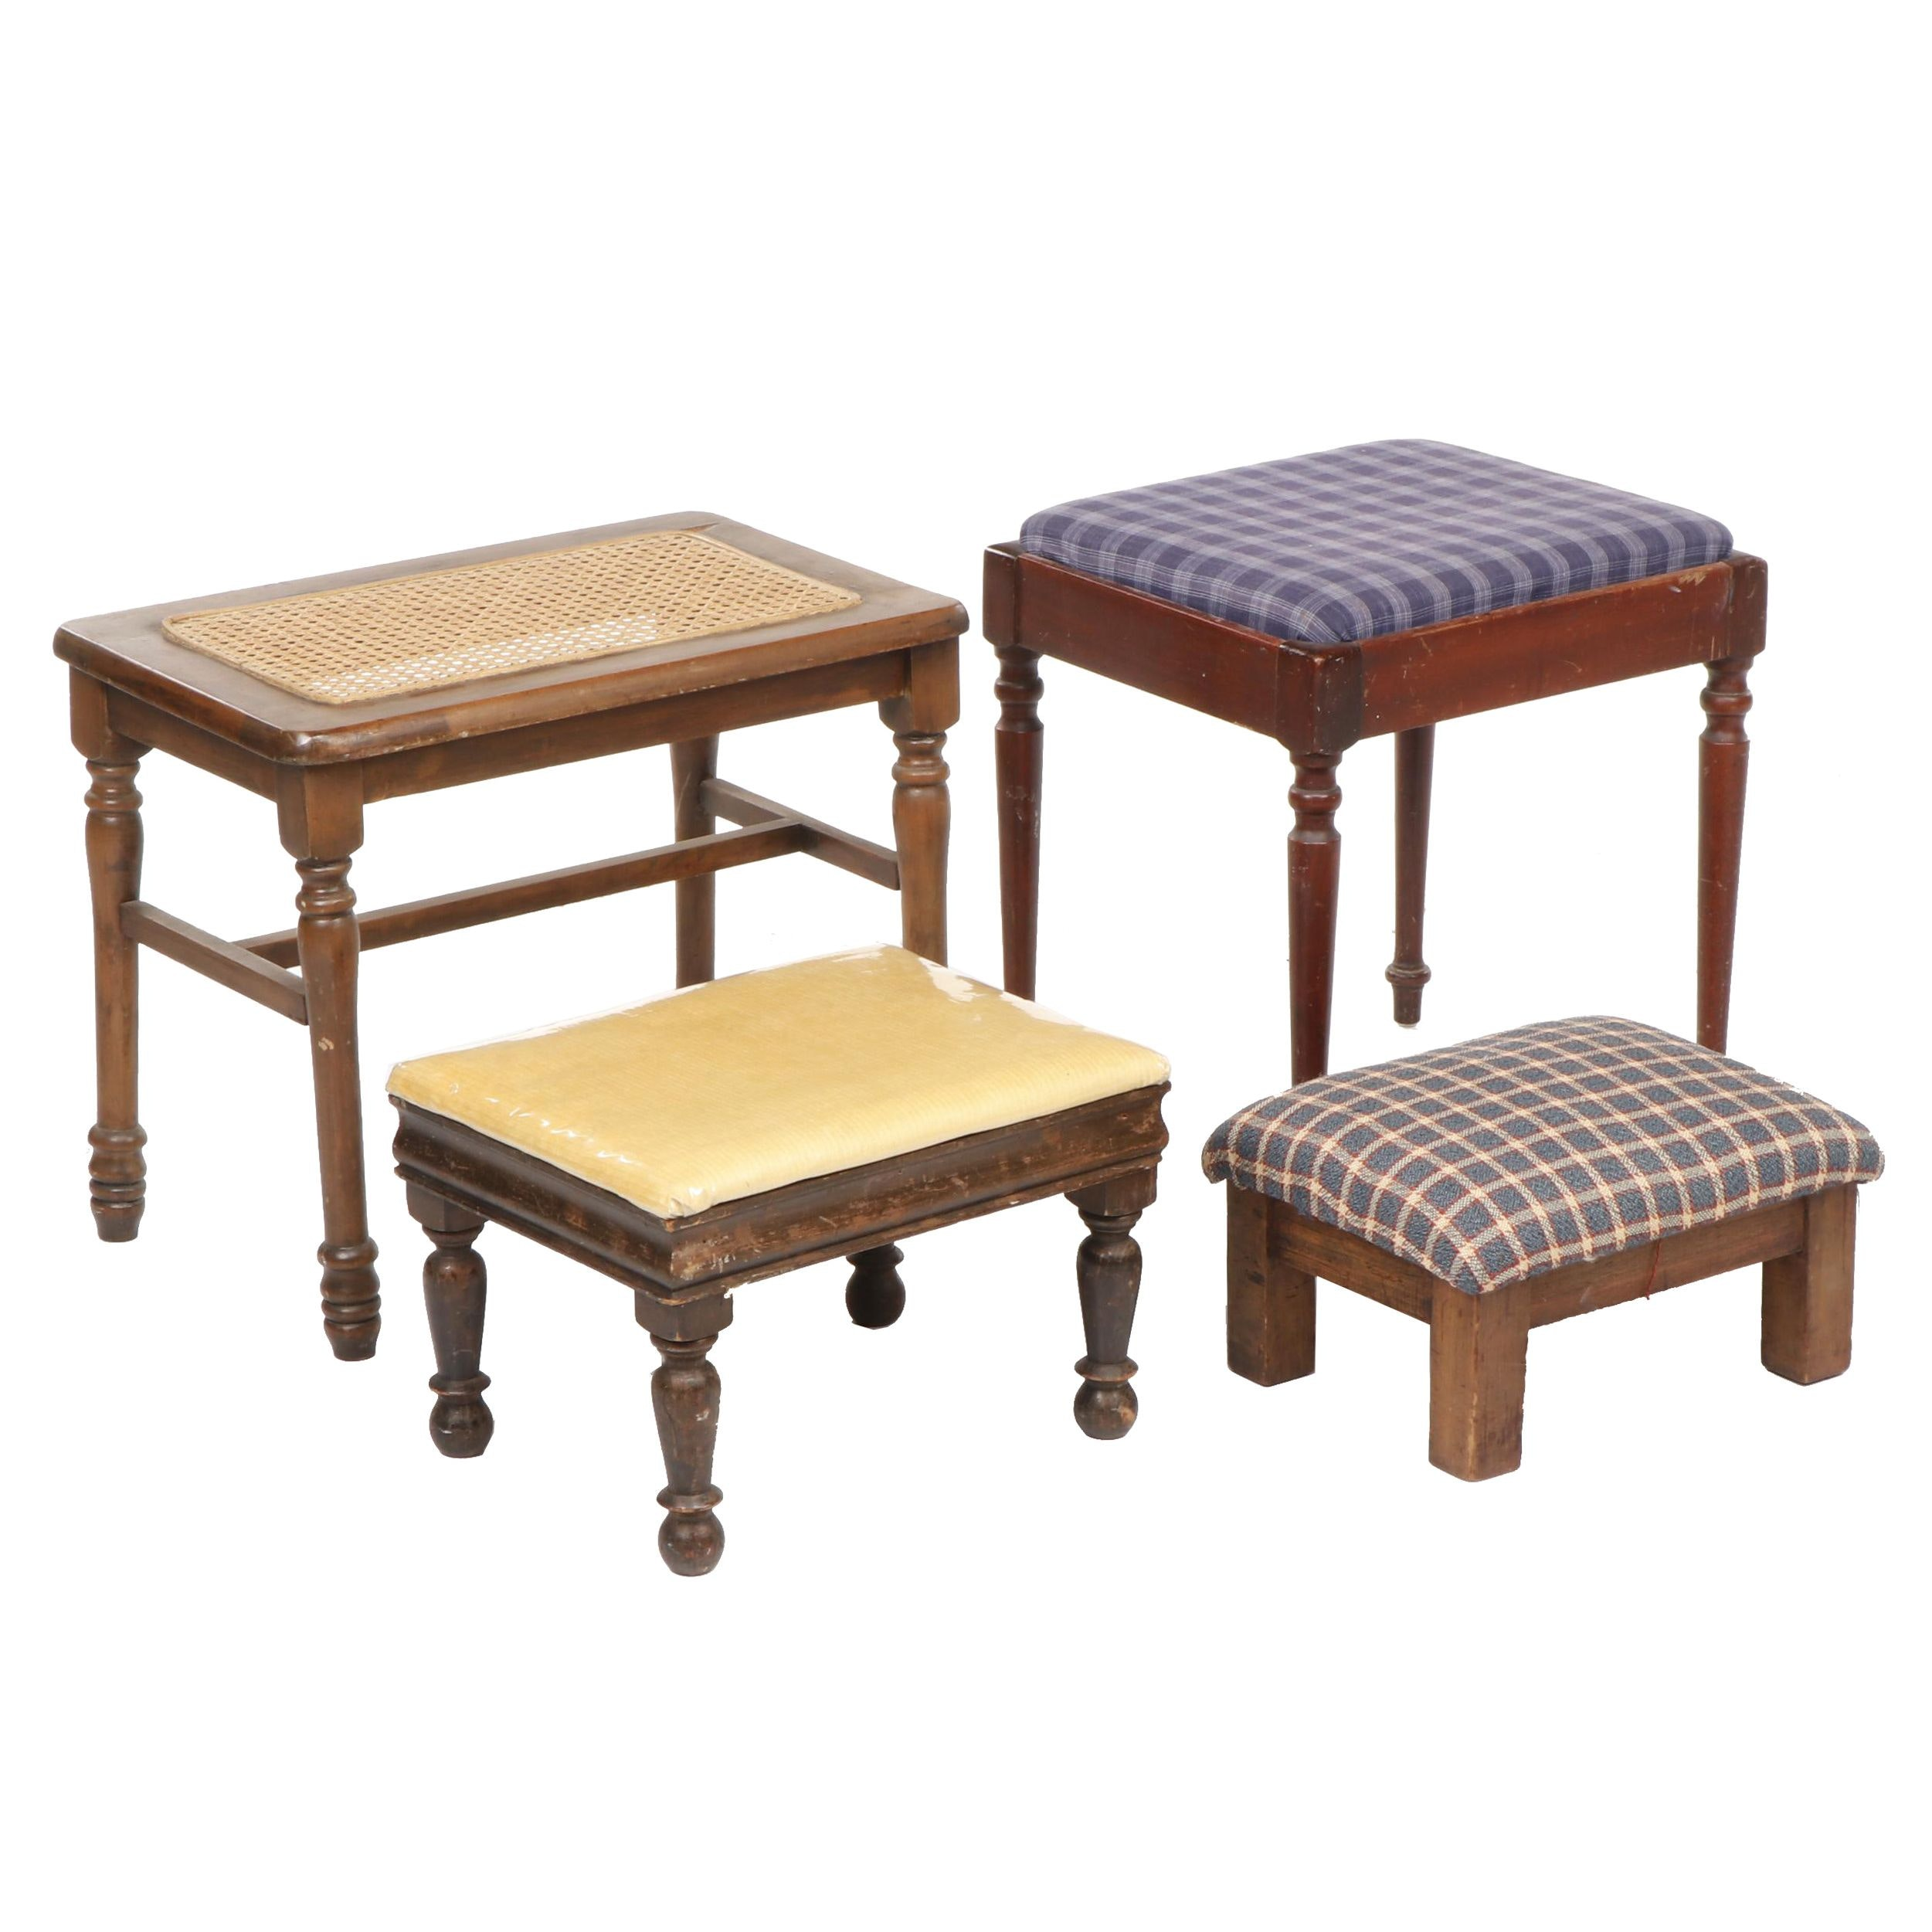 Wooden Upholstered Stools, Set of Four